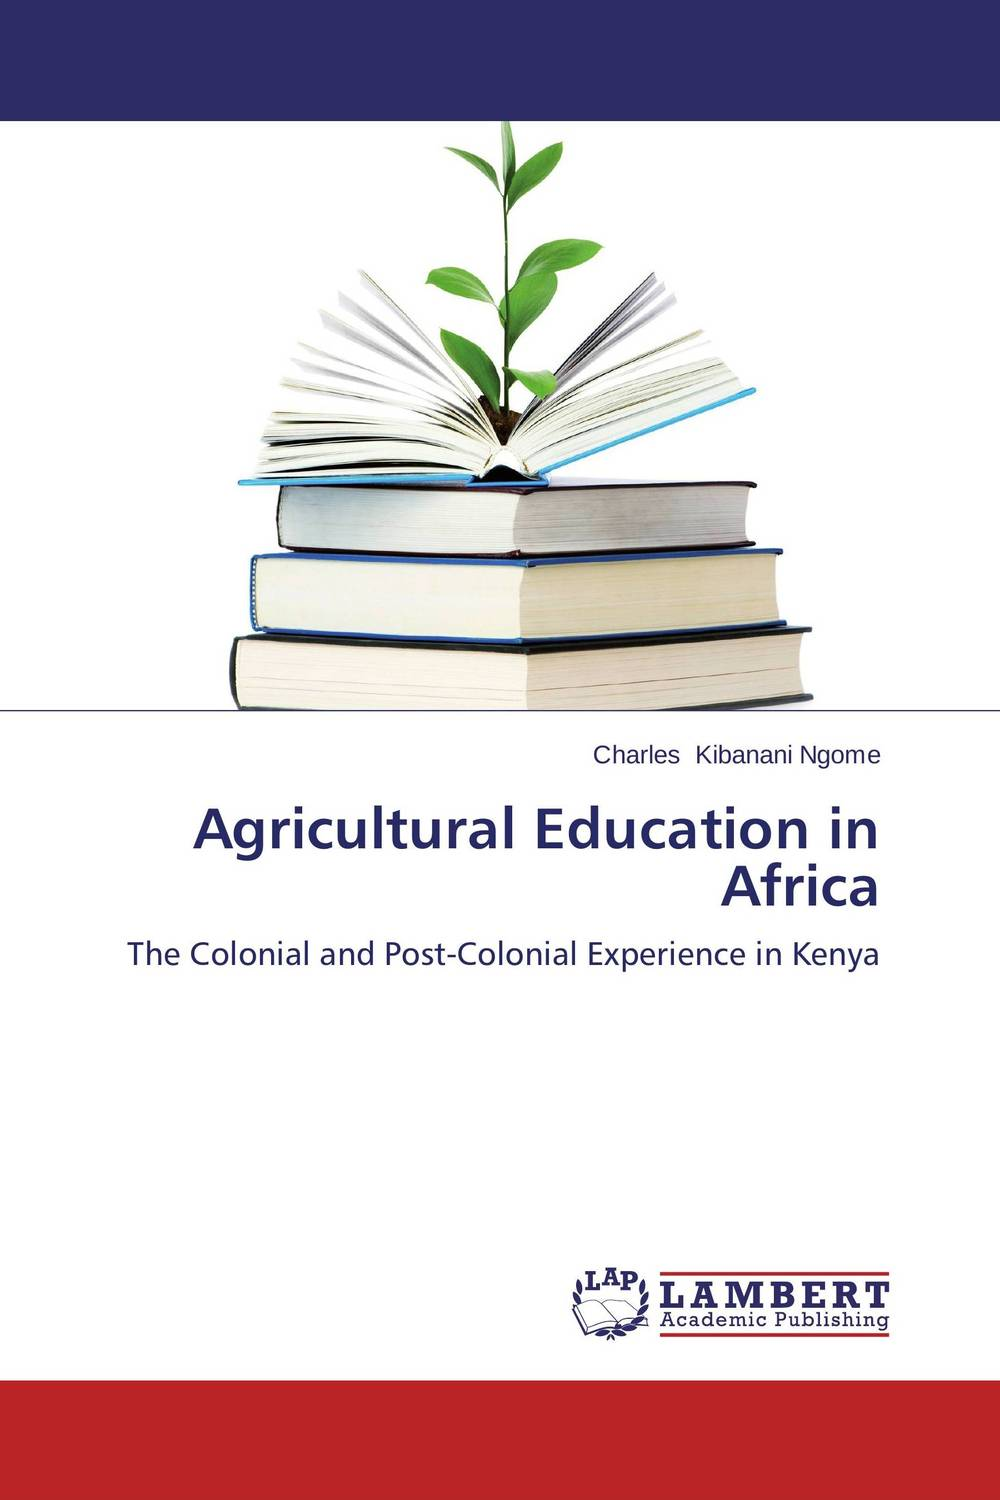 Agricultural Education in Africa